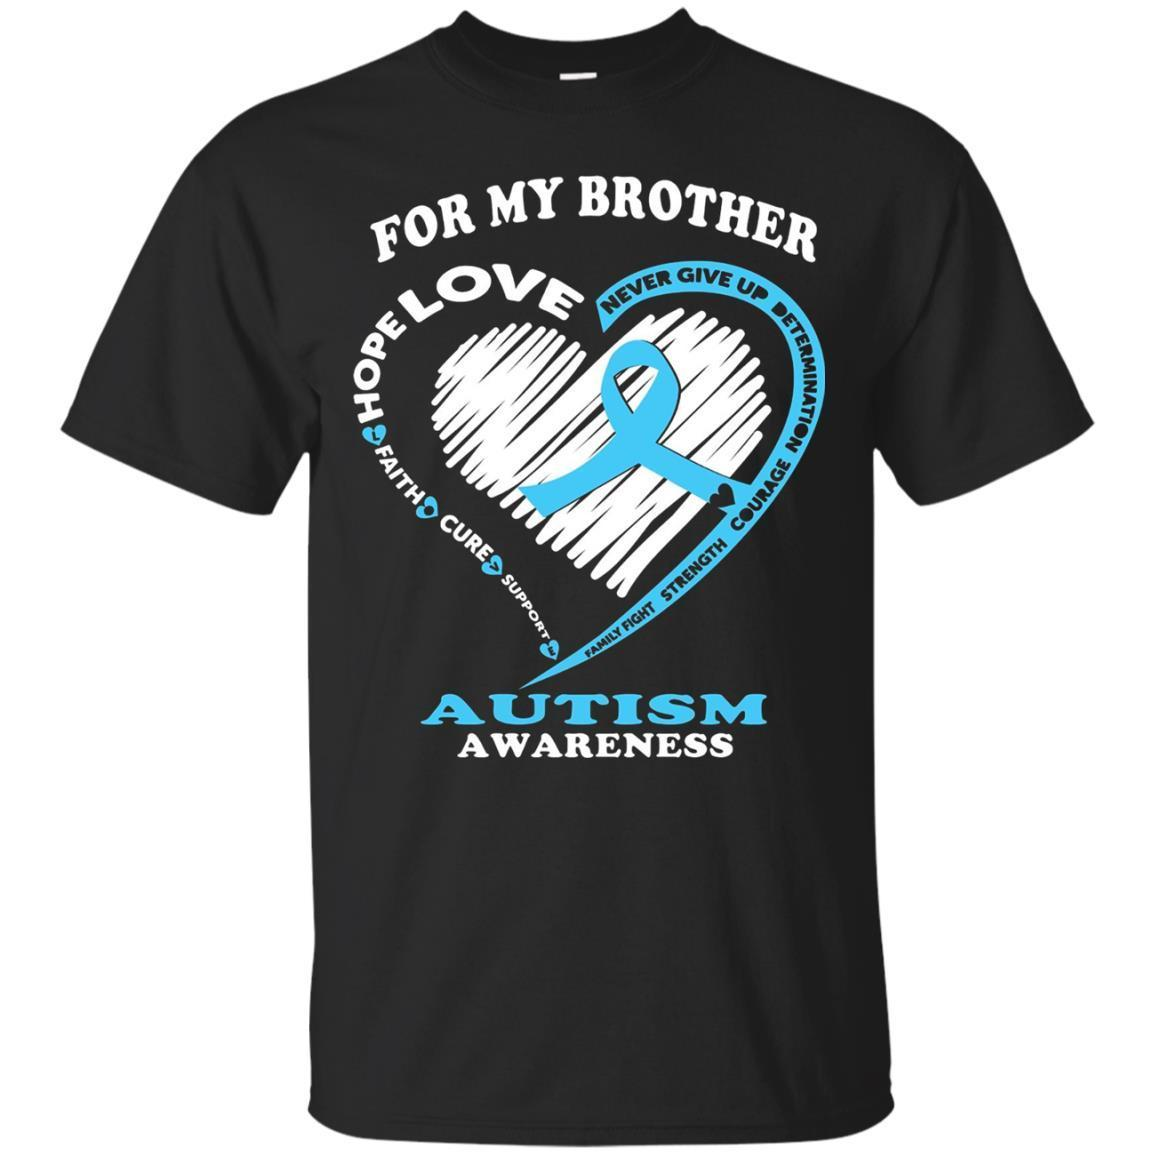 Autism Shirts – For My Brother Autism Awareness T-Shirt